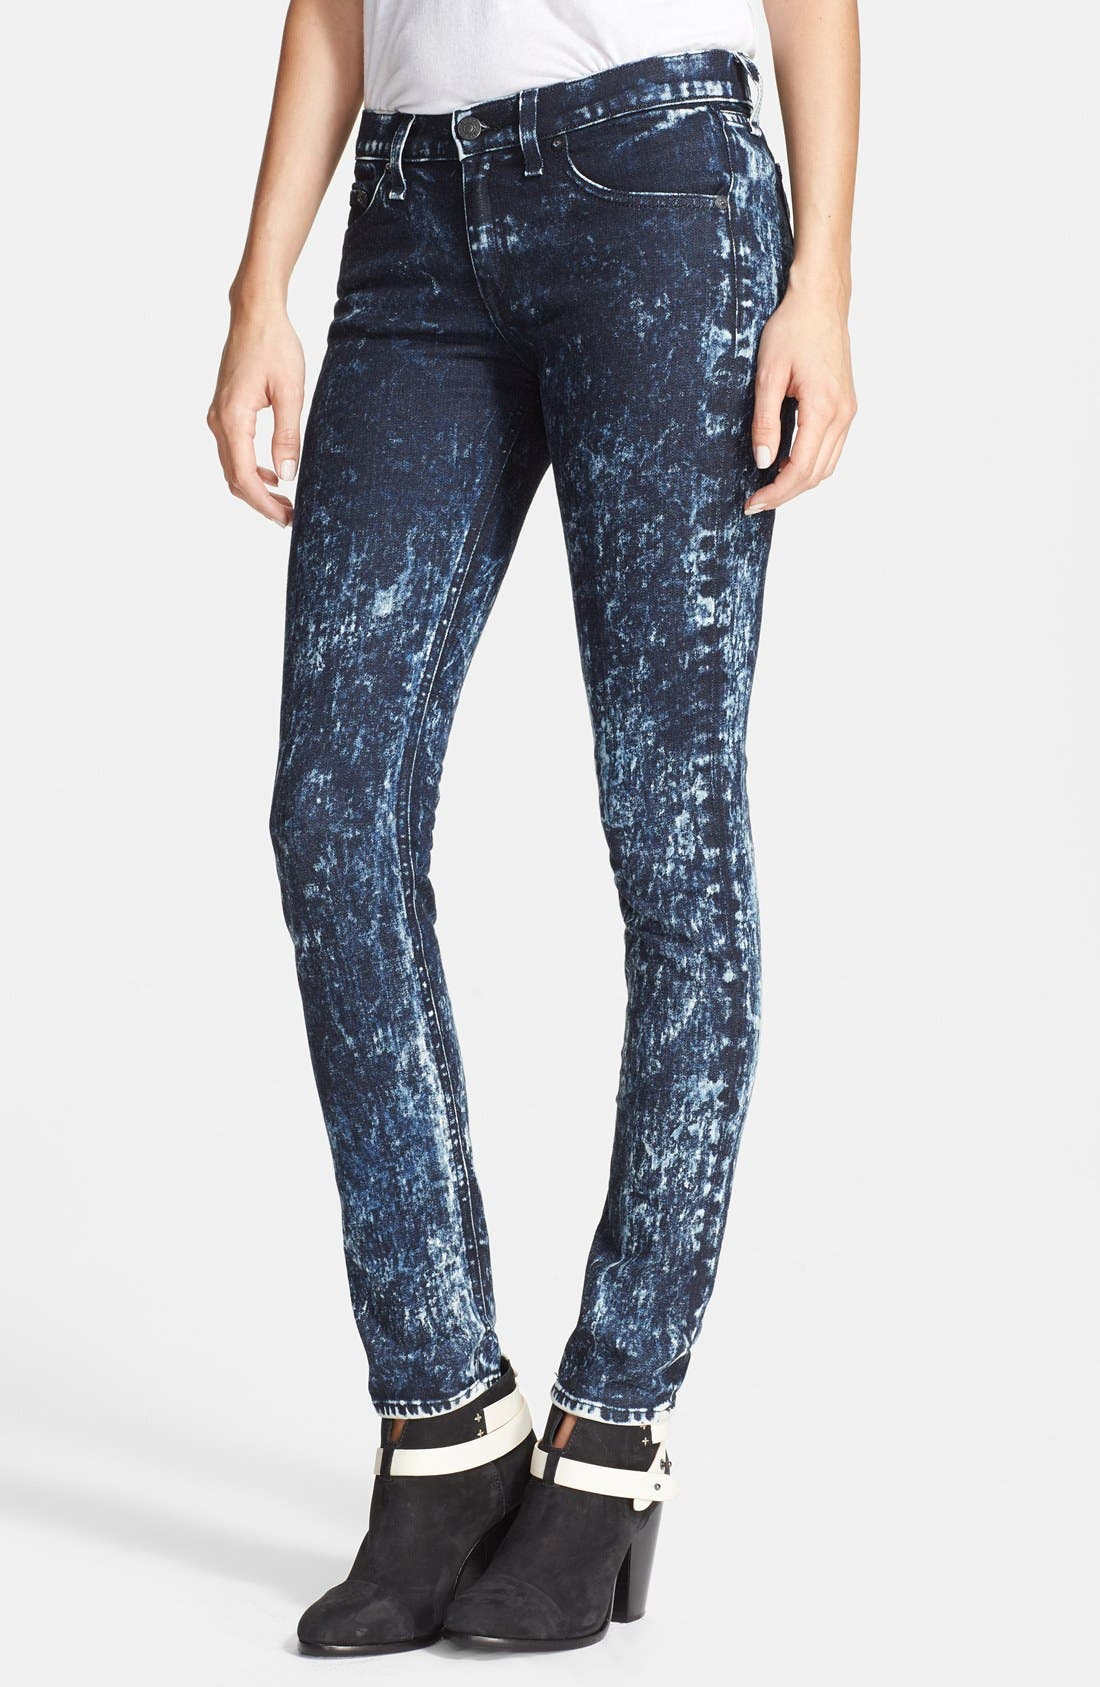 Main Image - rag & bone/JEAN Stretch Skinny Jeans (Acid Wash/Black/White)